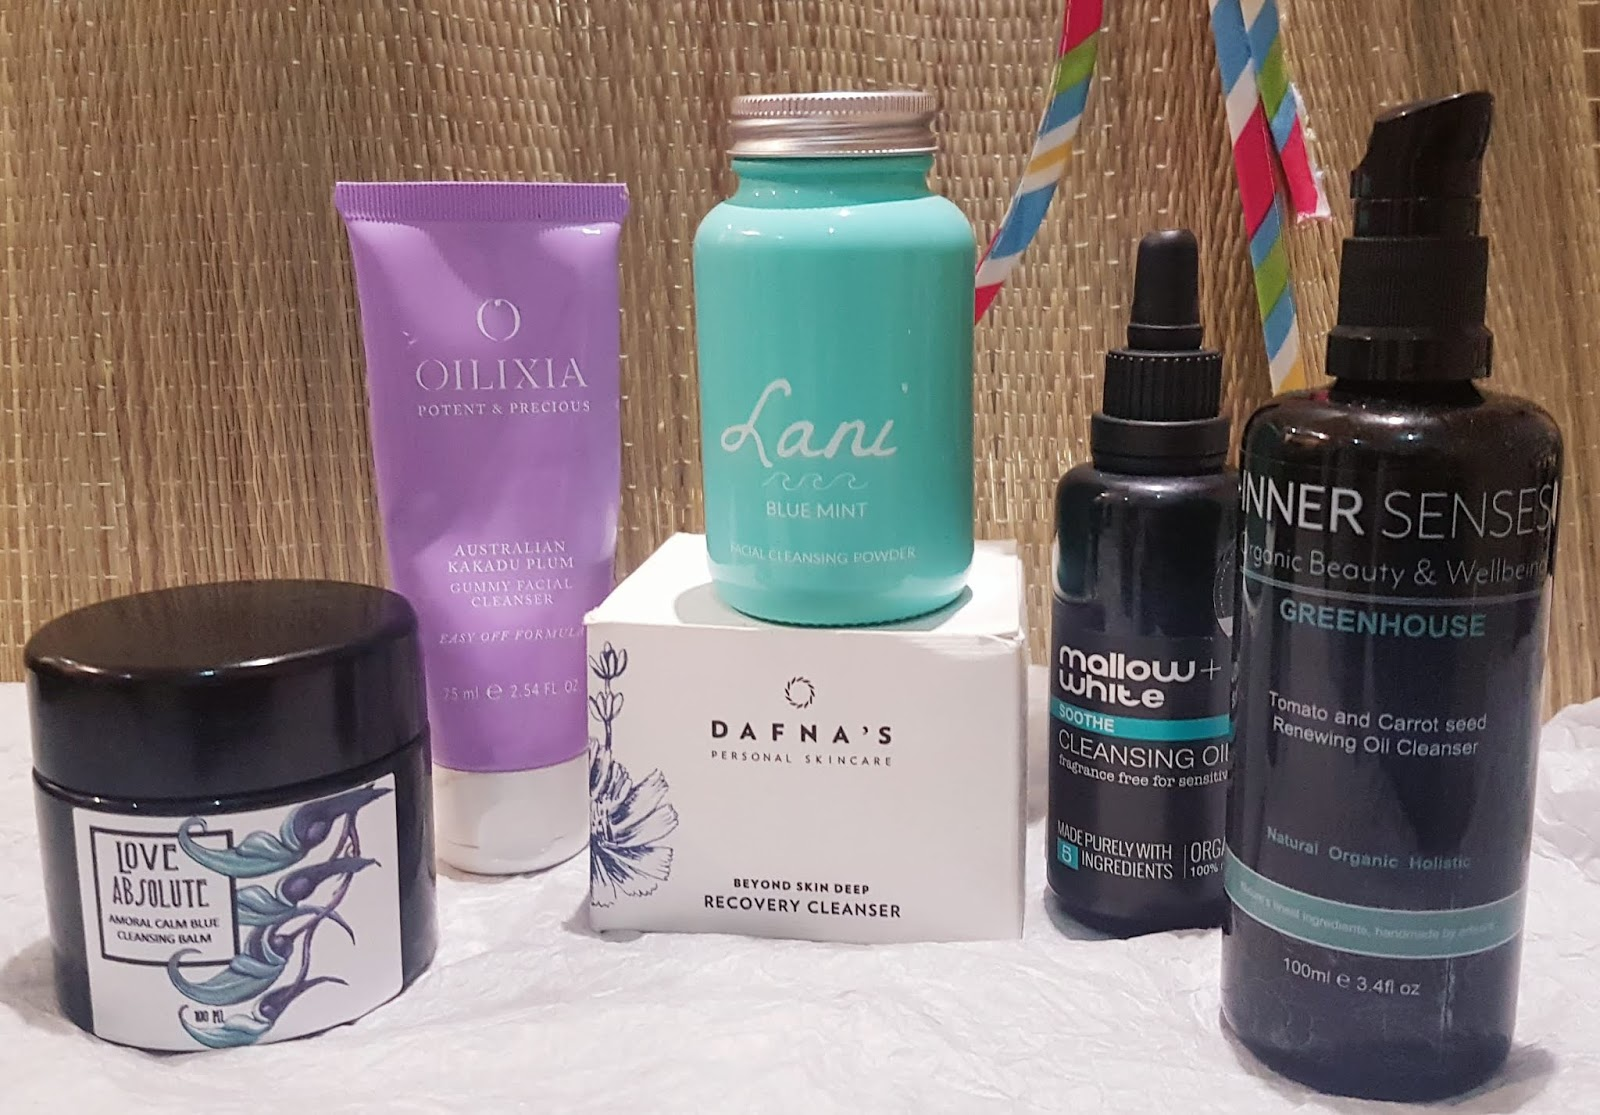 Best of Ethical Skincare 2019 - Cleansers: Oilixia Lani Inner Senses Mallow + White Love Absolute Dafnas